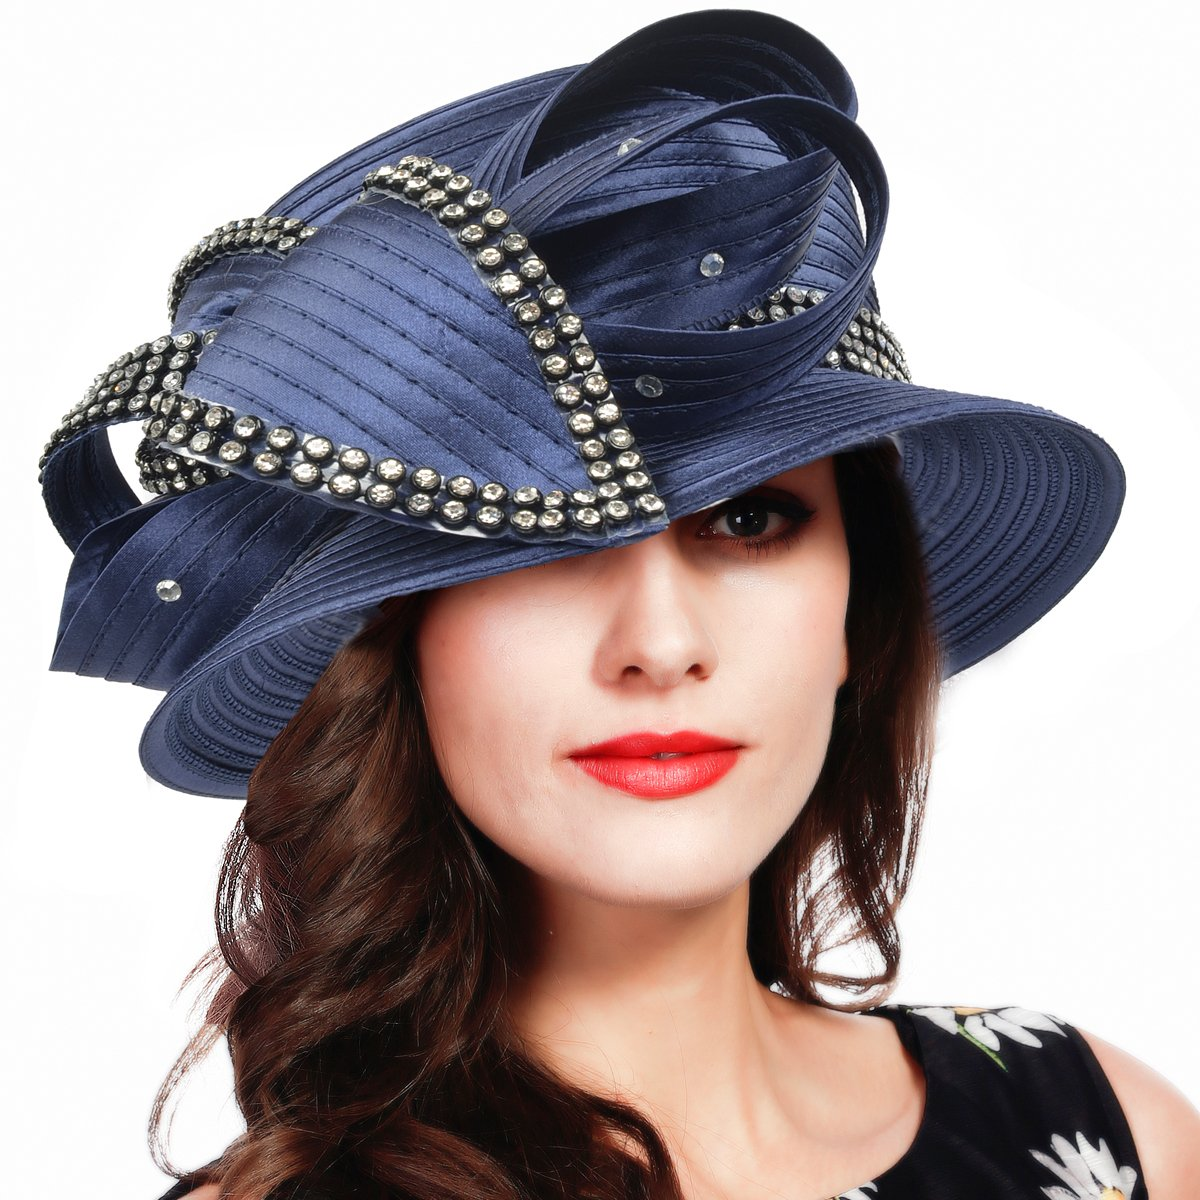 FORBUSITE Stripe Ribbon Asymmetry Church Derby Dress Hat SD707 (Navy) by FORBUSITE (Image #1)